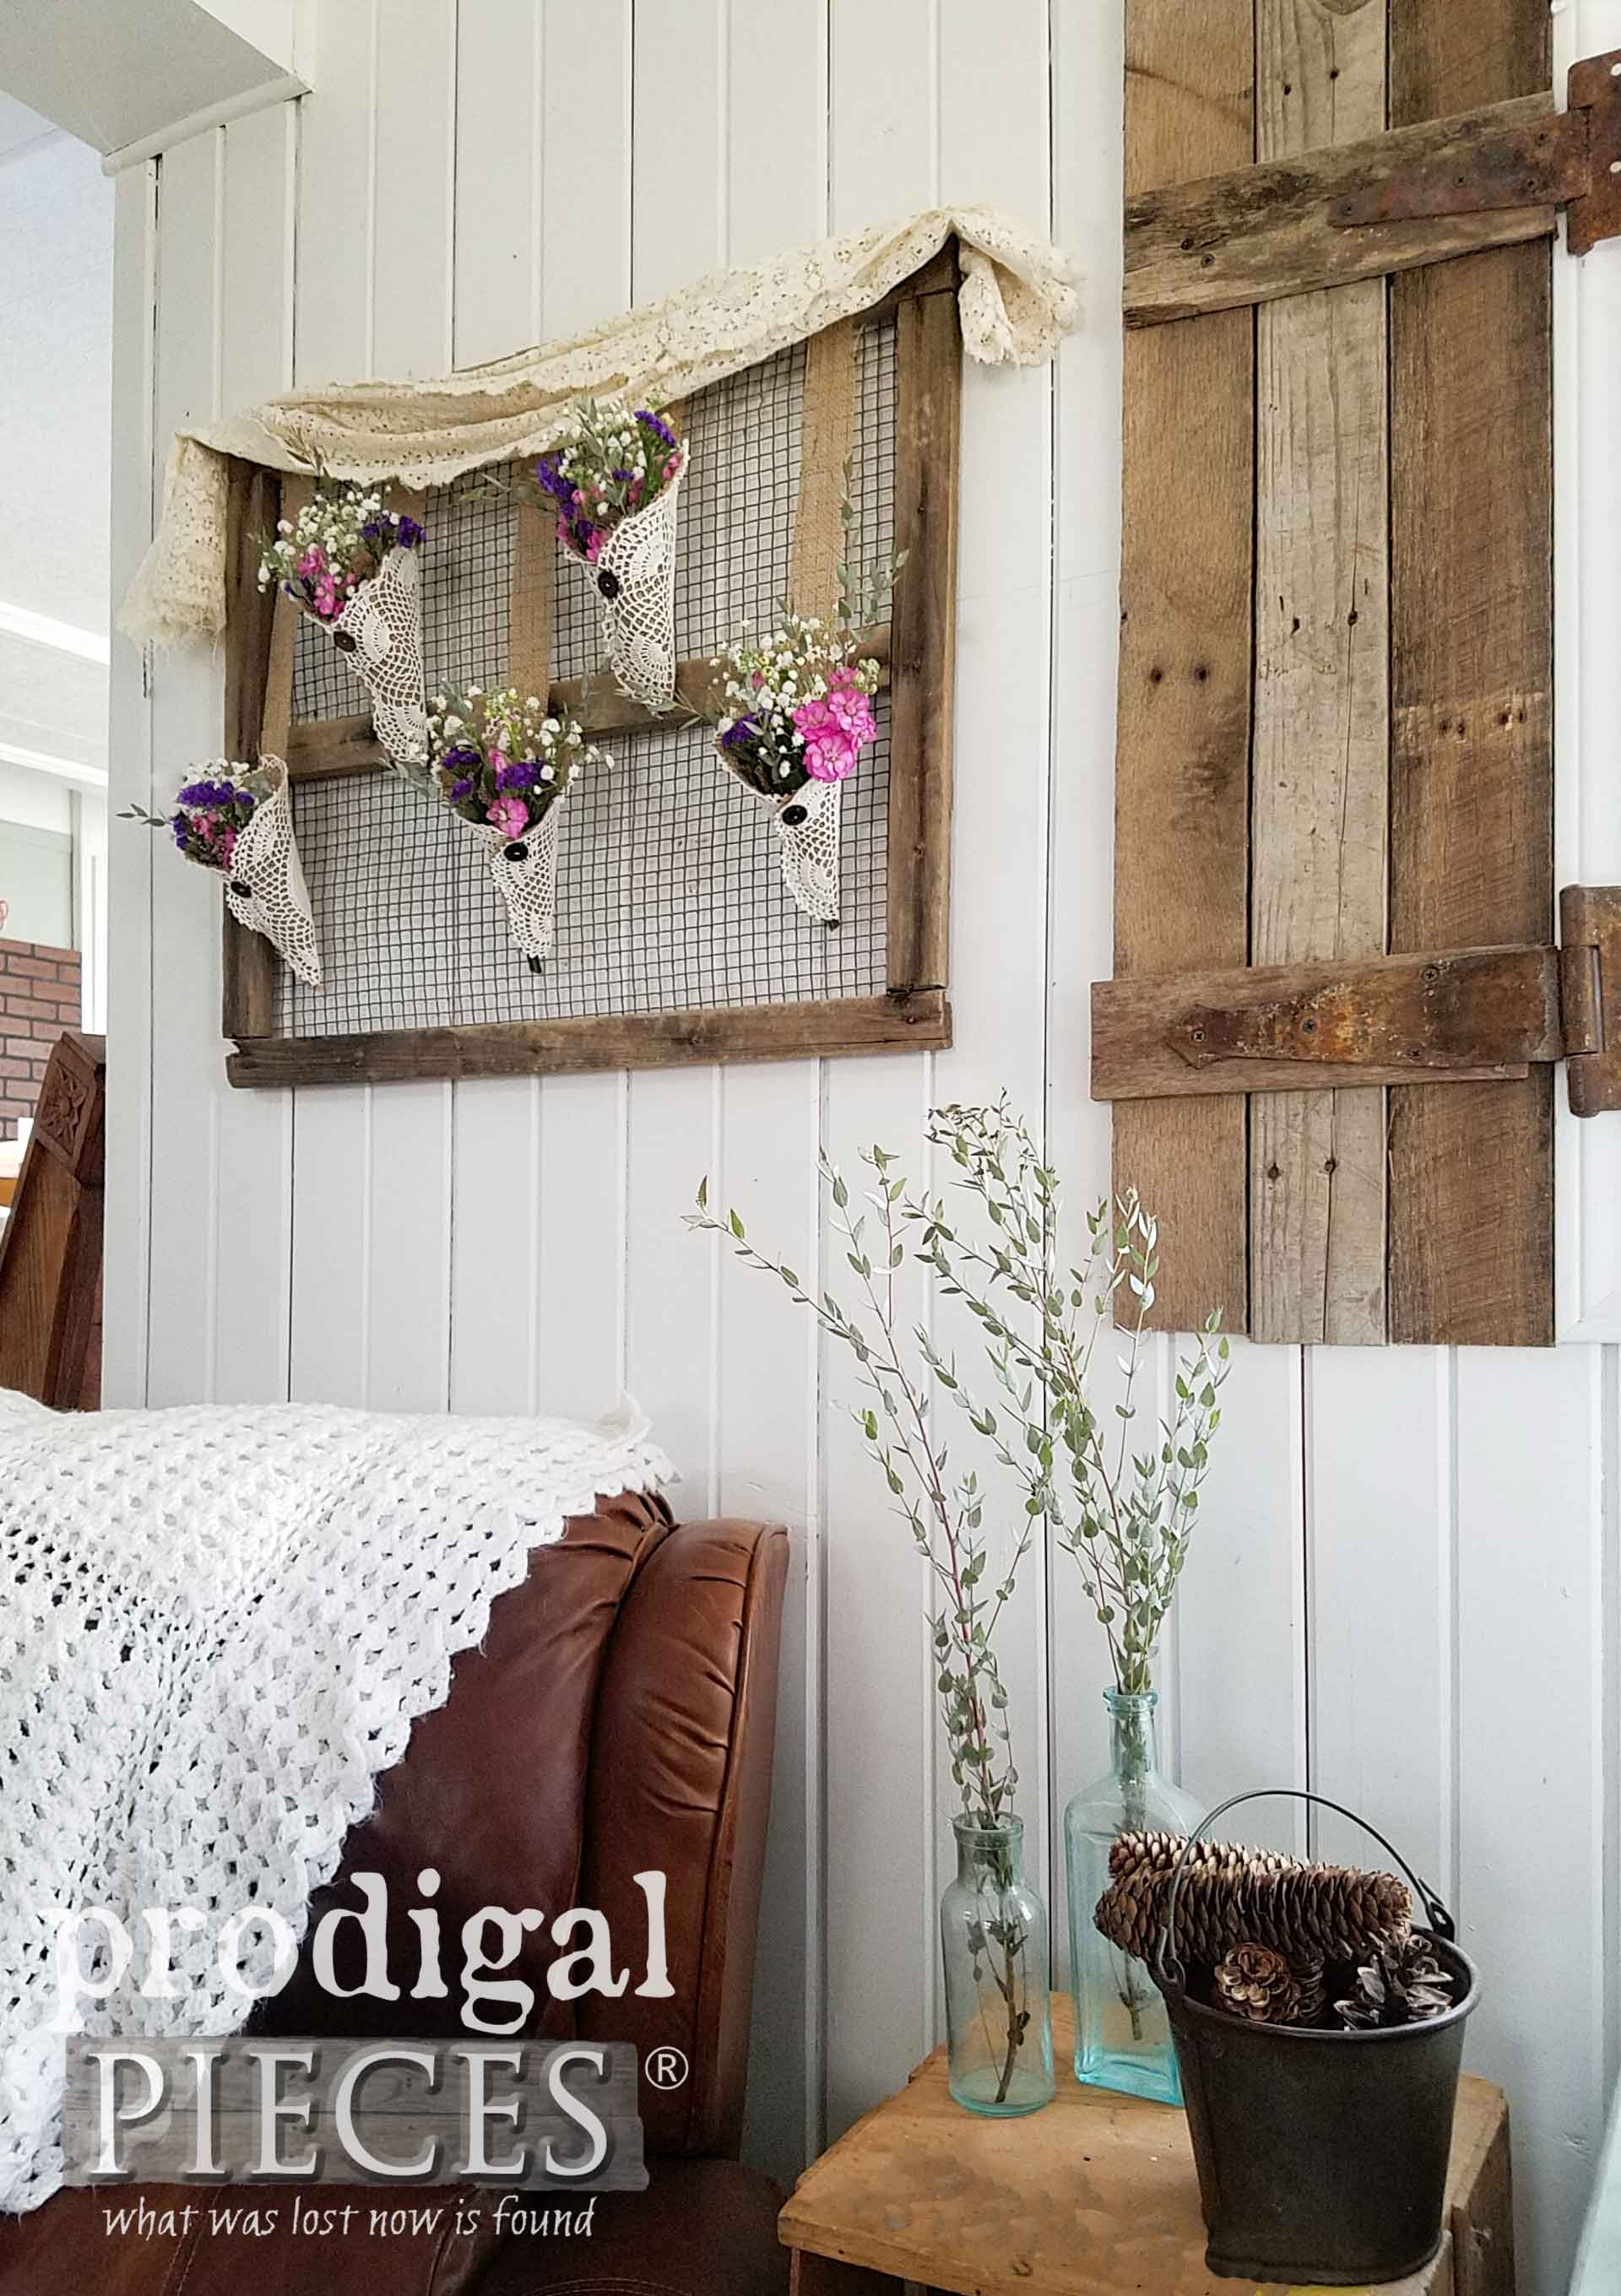 Beautiful and Simple Rustic Chic Farmhouse Decor from Flea Market Finds by Larissa of Prodigal Pieces | prodigalpieces.com